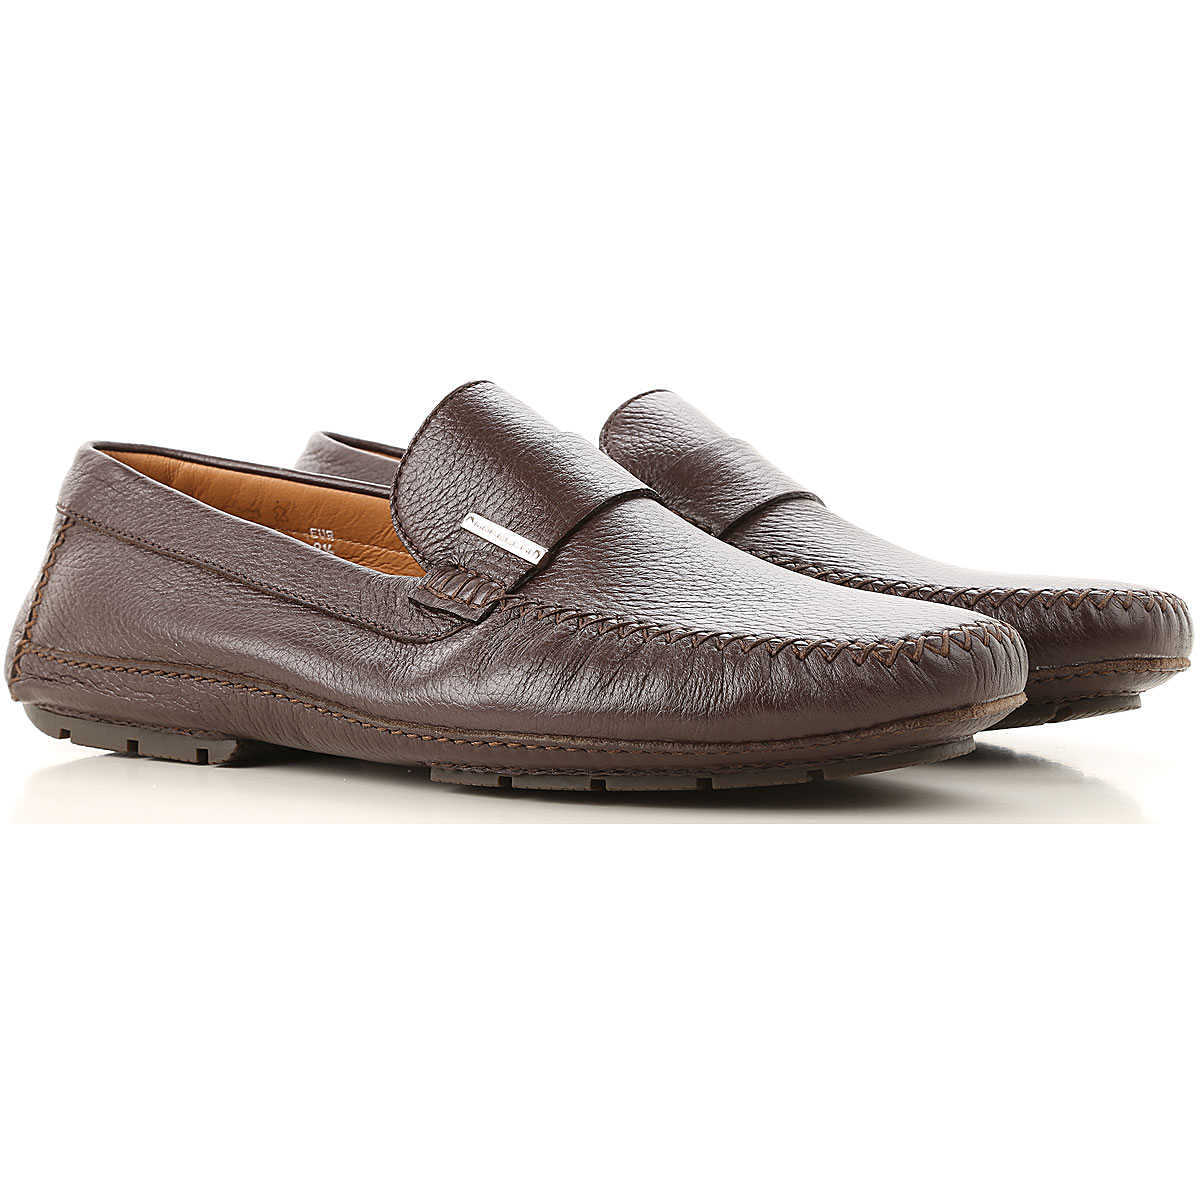 Moreschi Loafers for Men On Sale Brown - GOOFASH